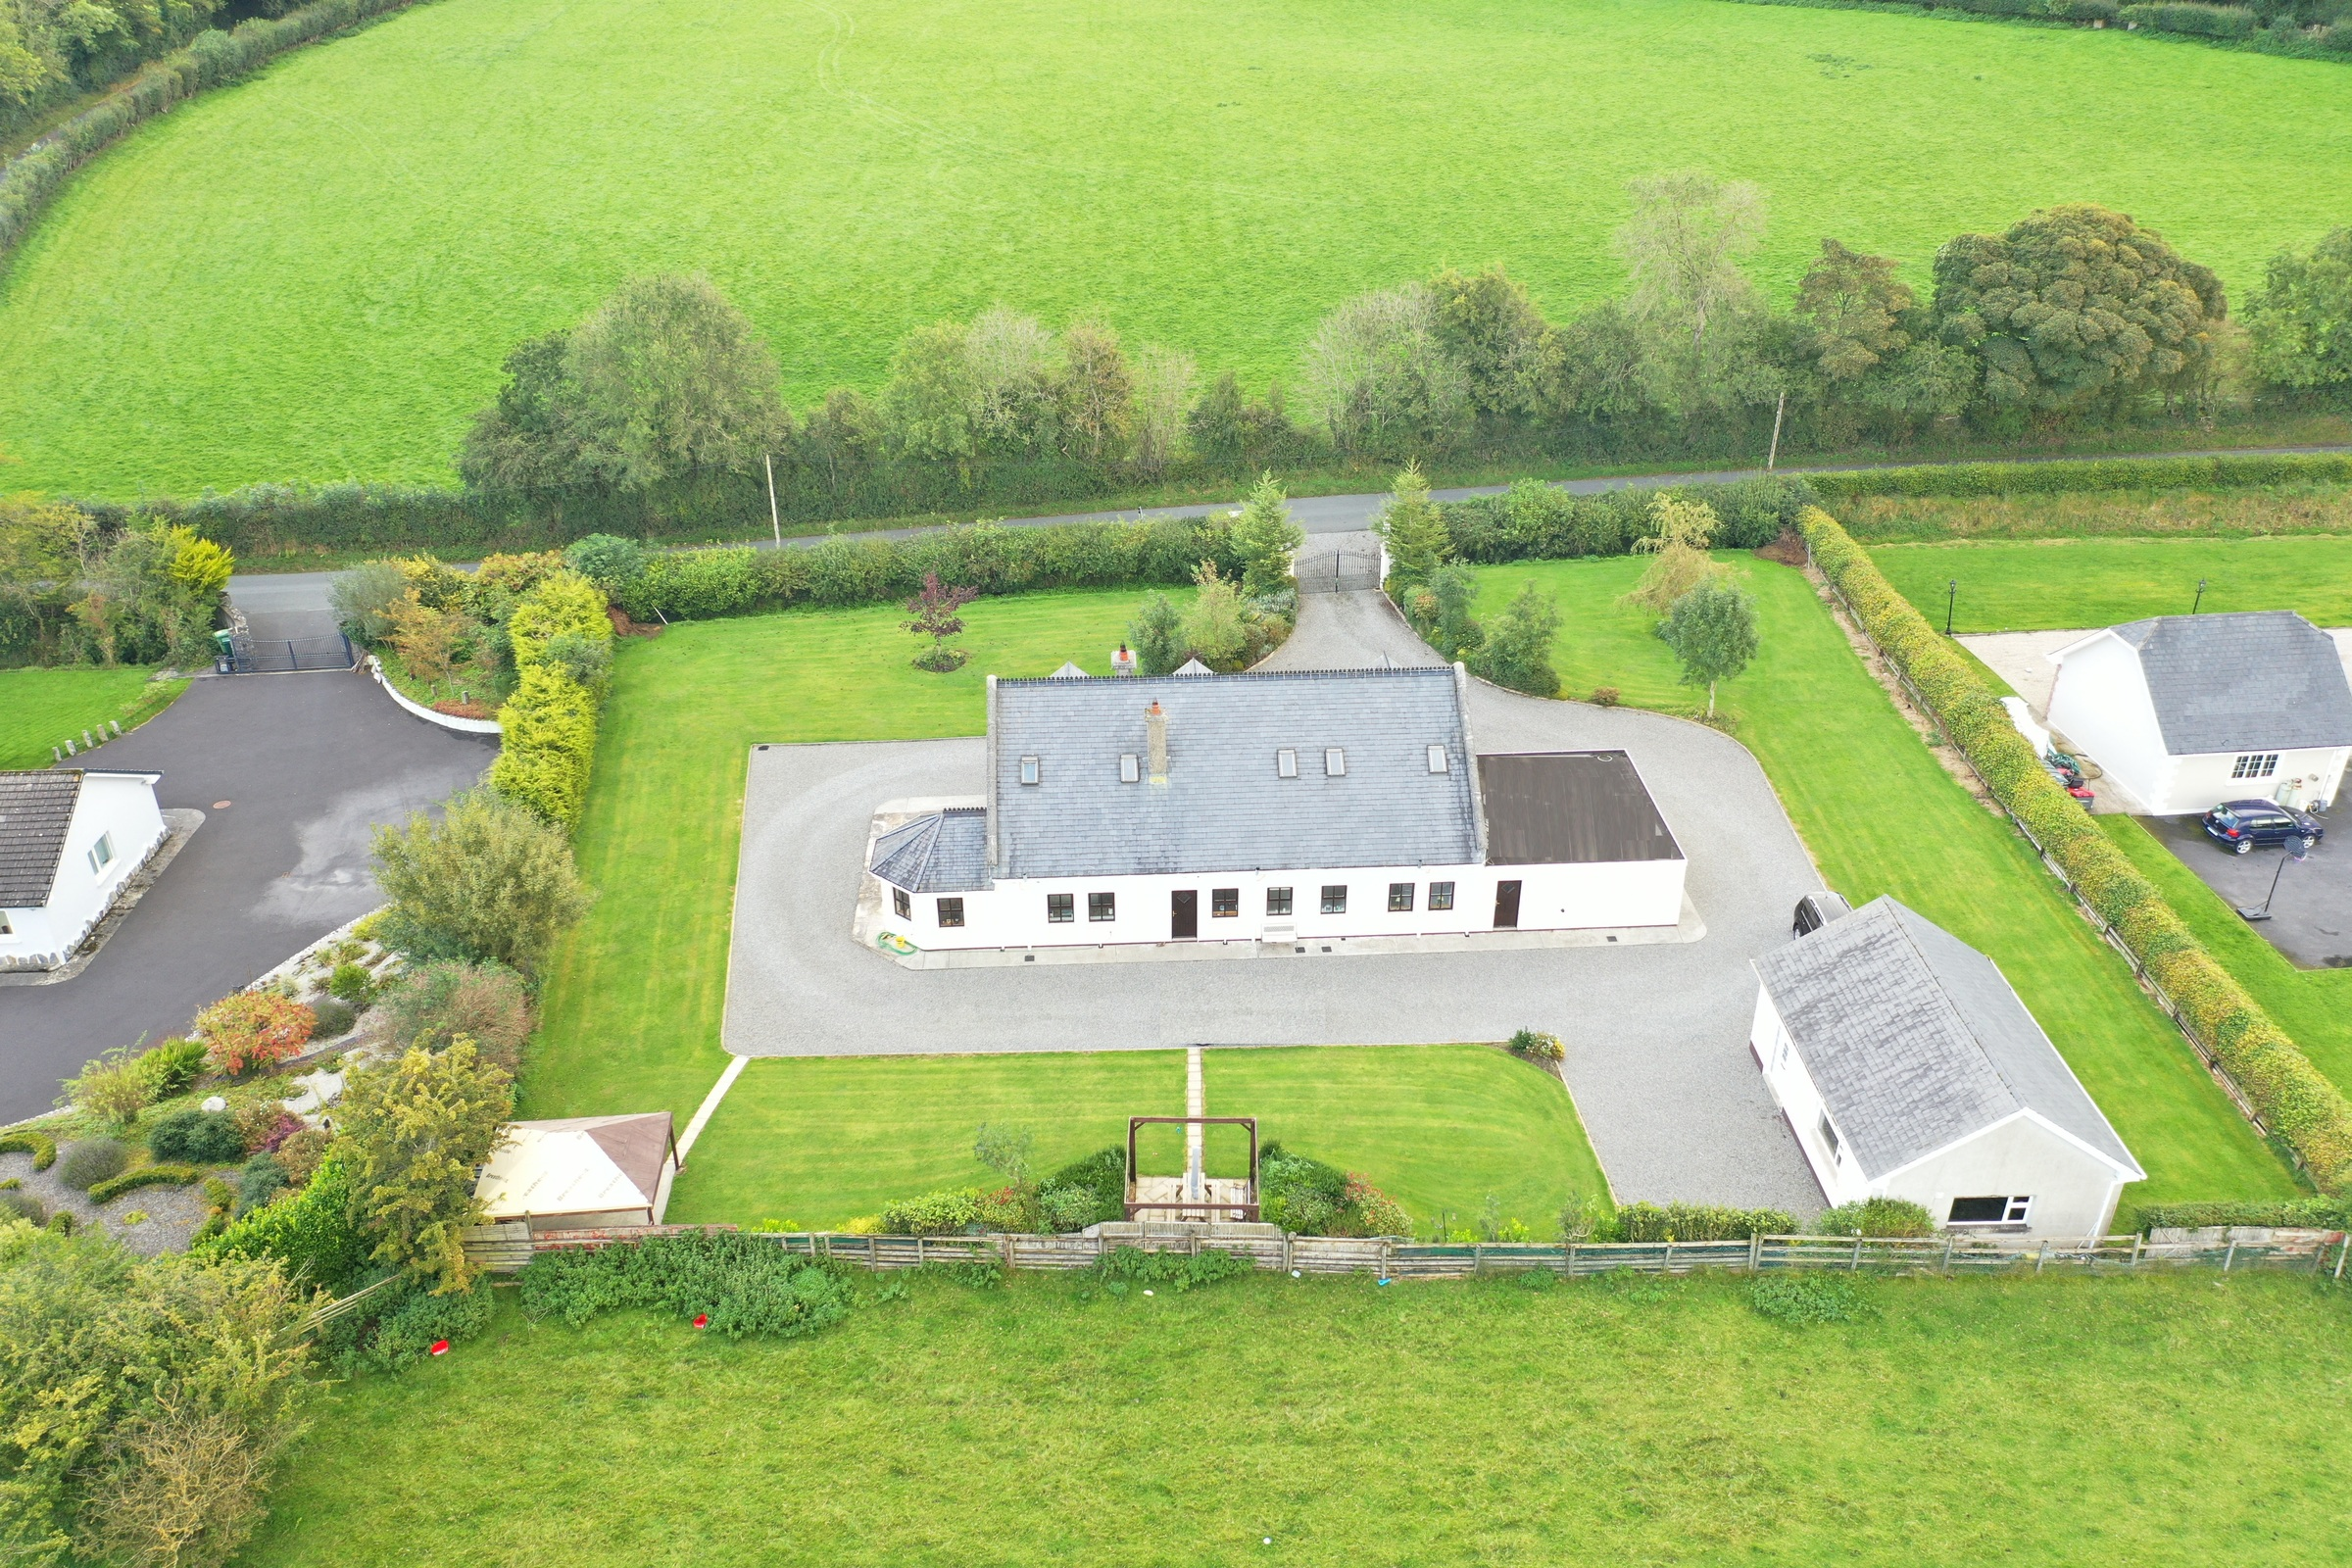 Rossclaire House, Blackhall, Naas, Co. Kildare